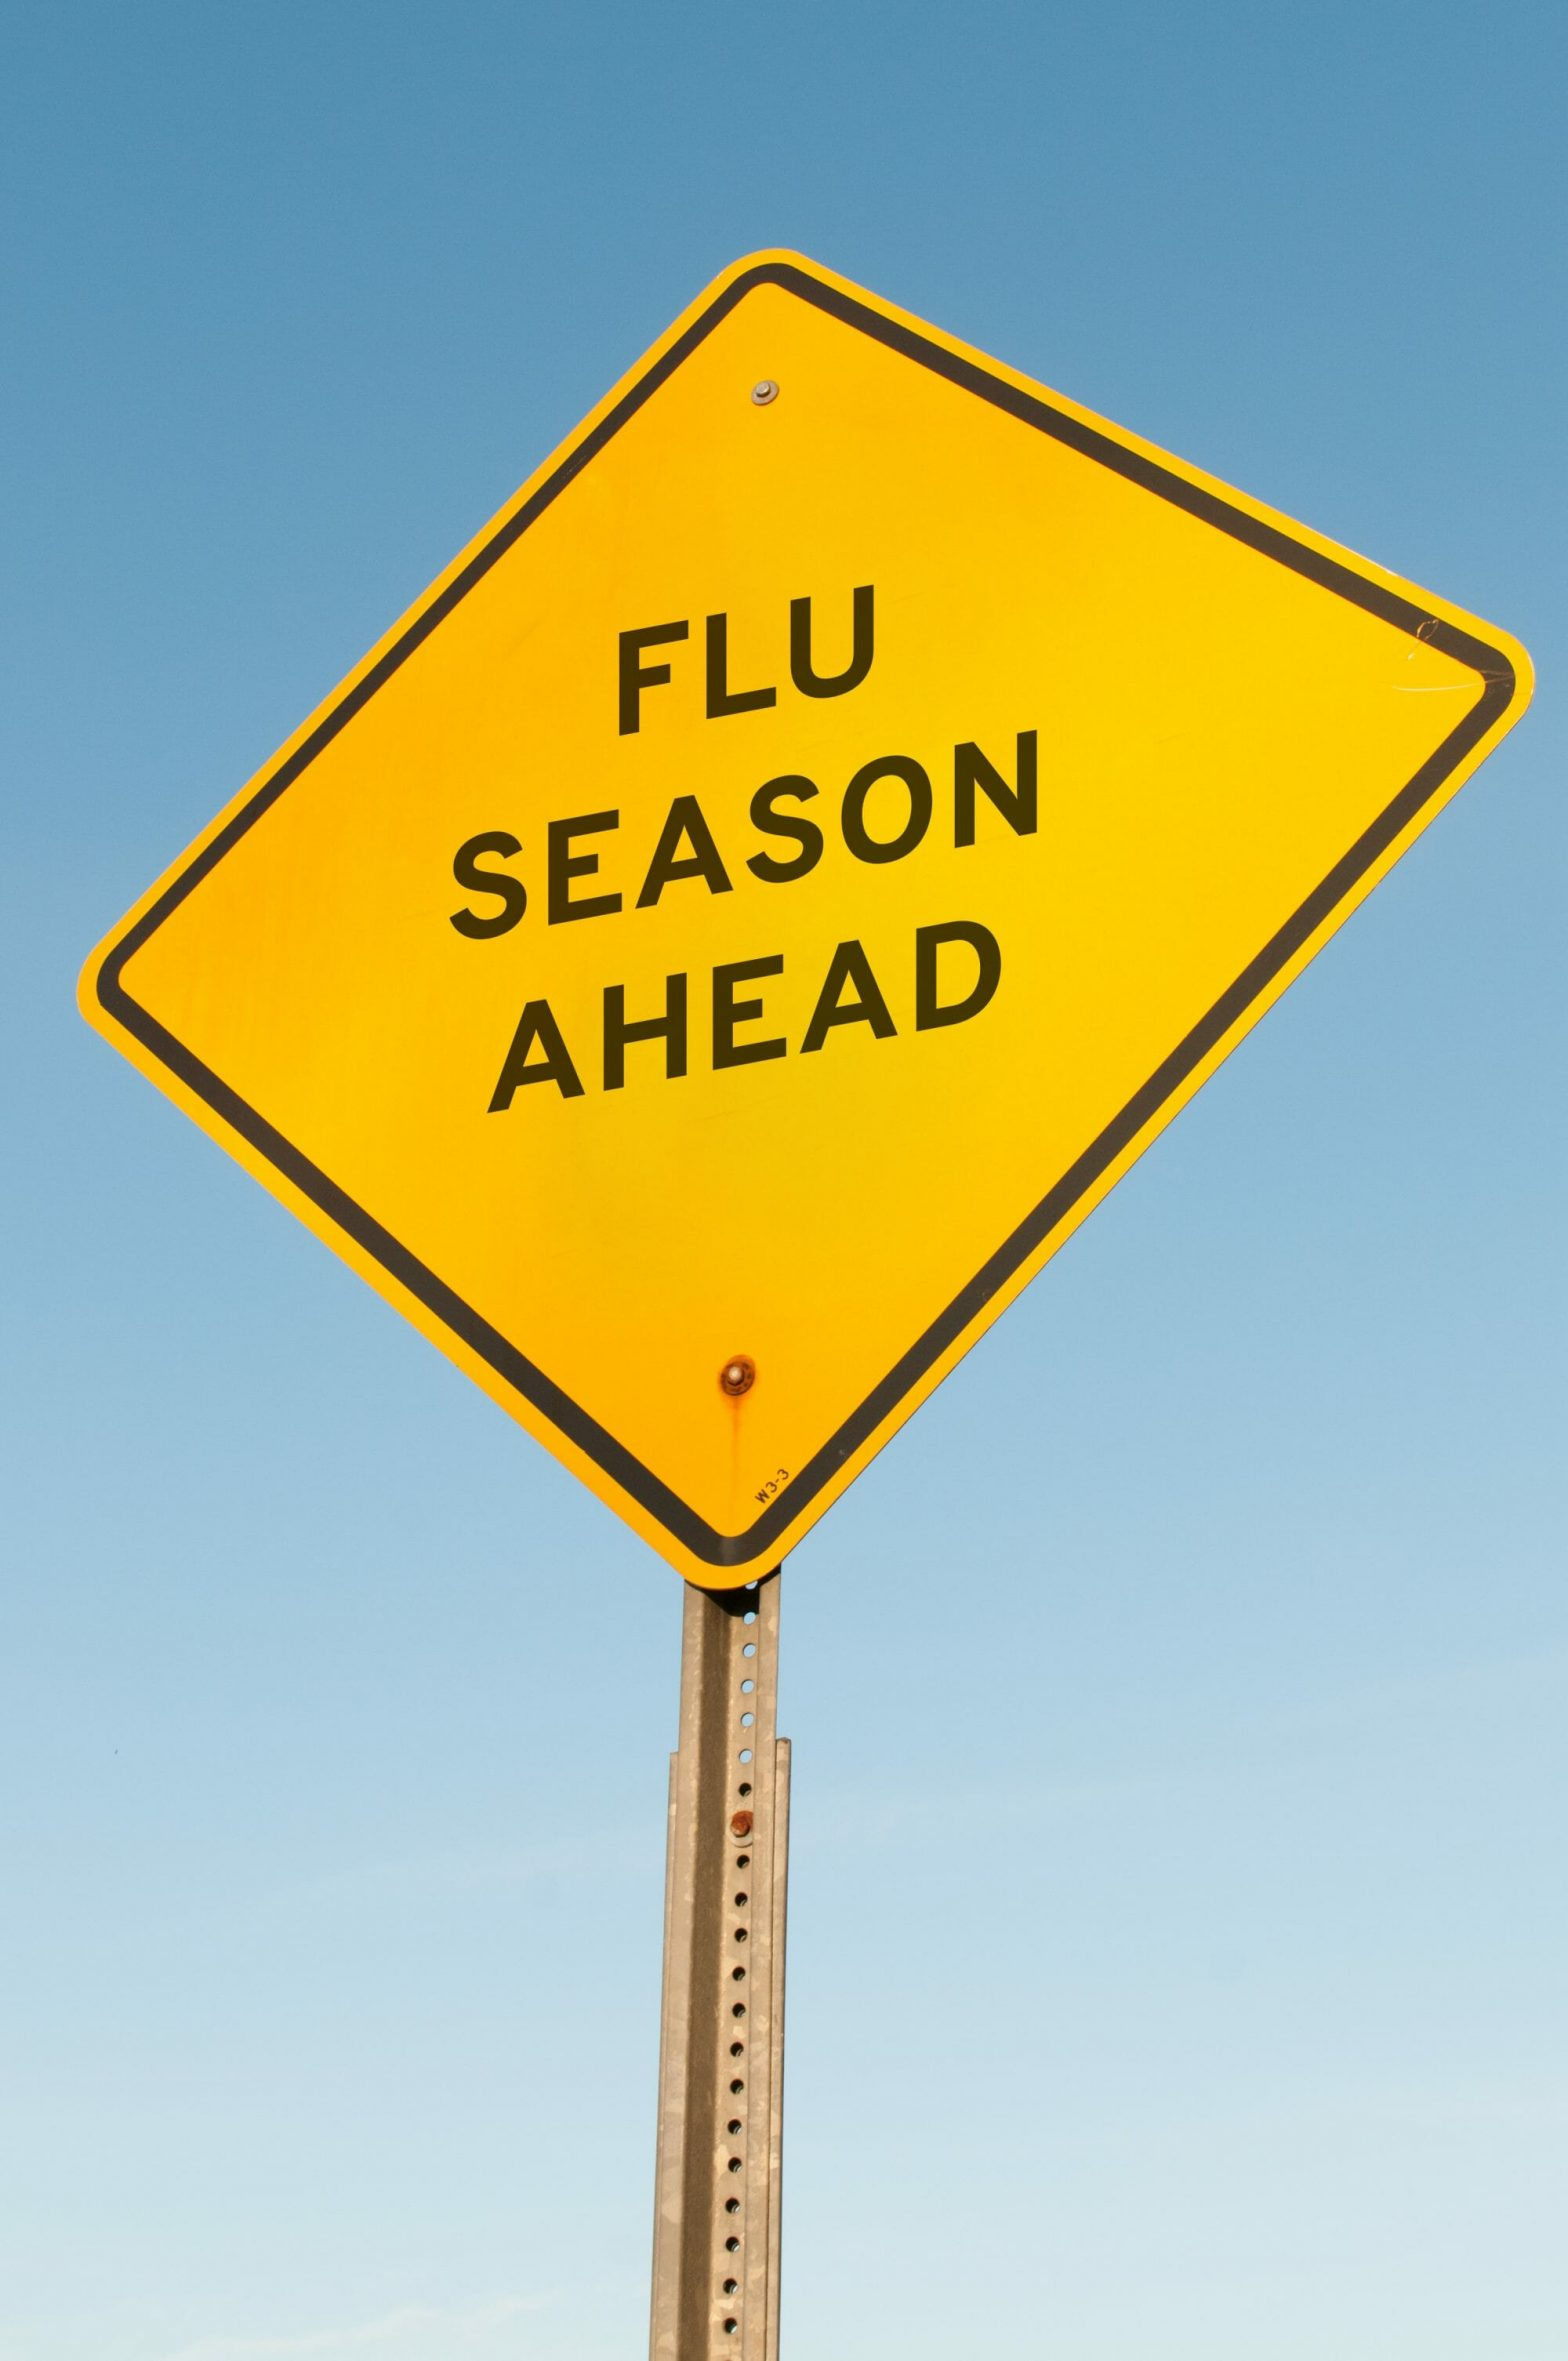 FLU SEASON: Get Well, Stay Well